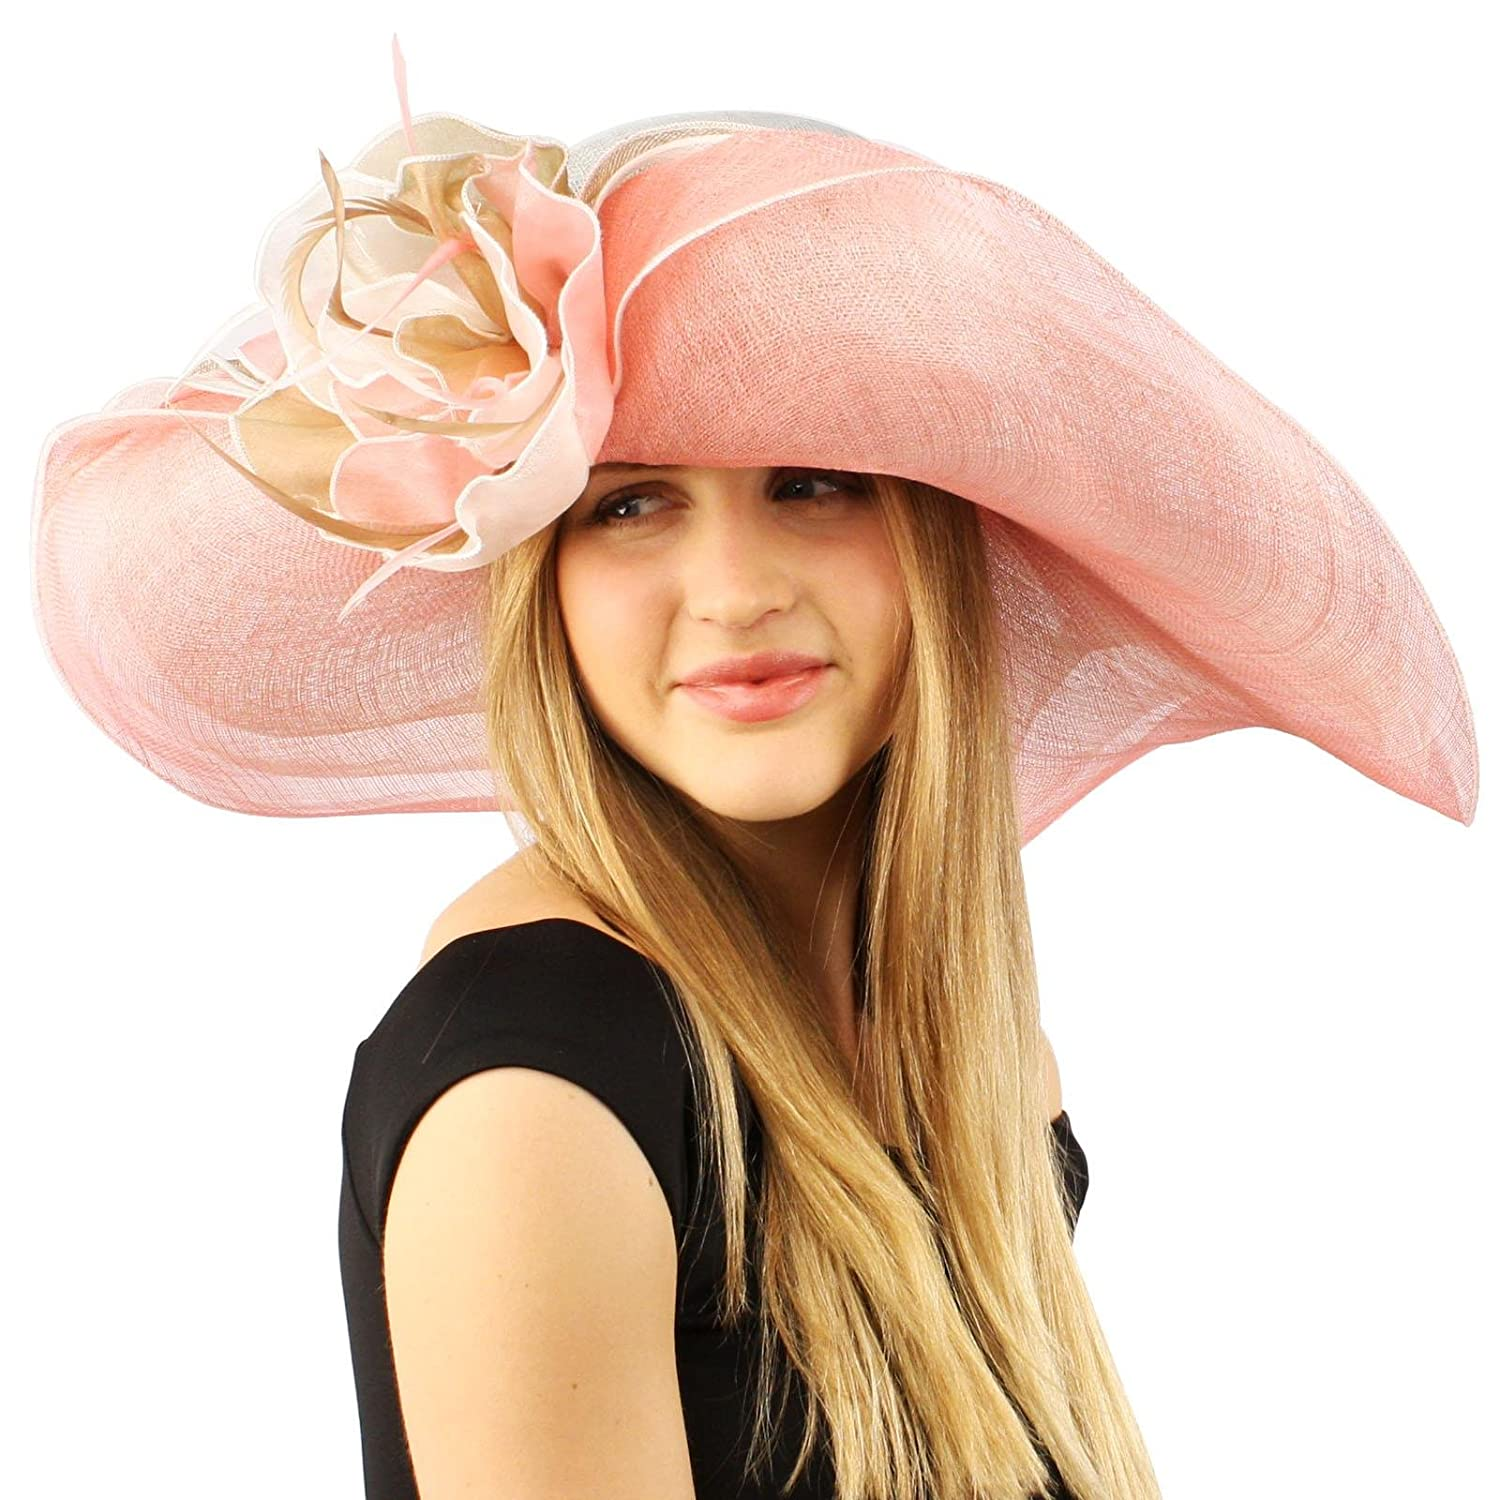 Edwardian Hats, Titanic Hats, Tea Party Hats Summer Kentucky Derby Side Flip 7 Brim Layer Floppy Flower Feathers Hat $29.89 AT vintagedancer.com